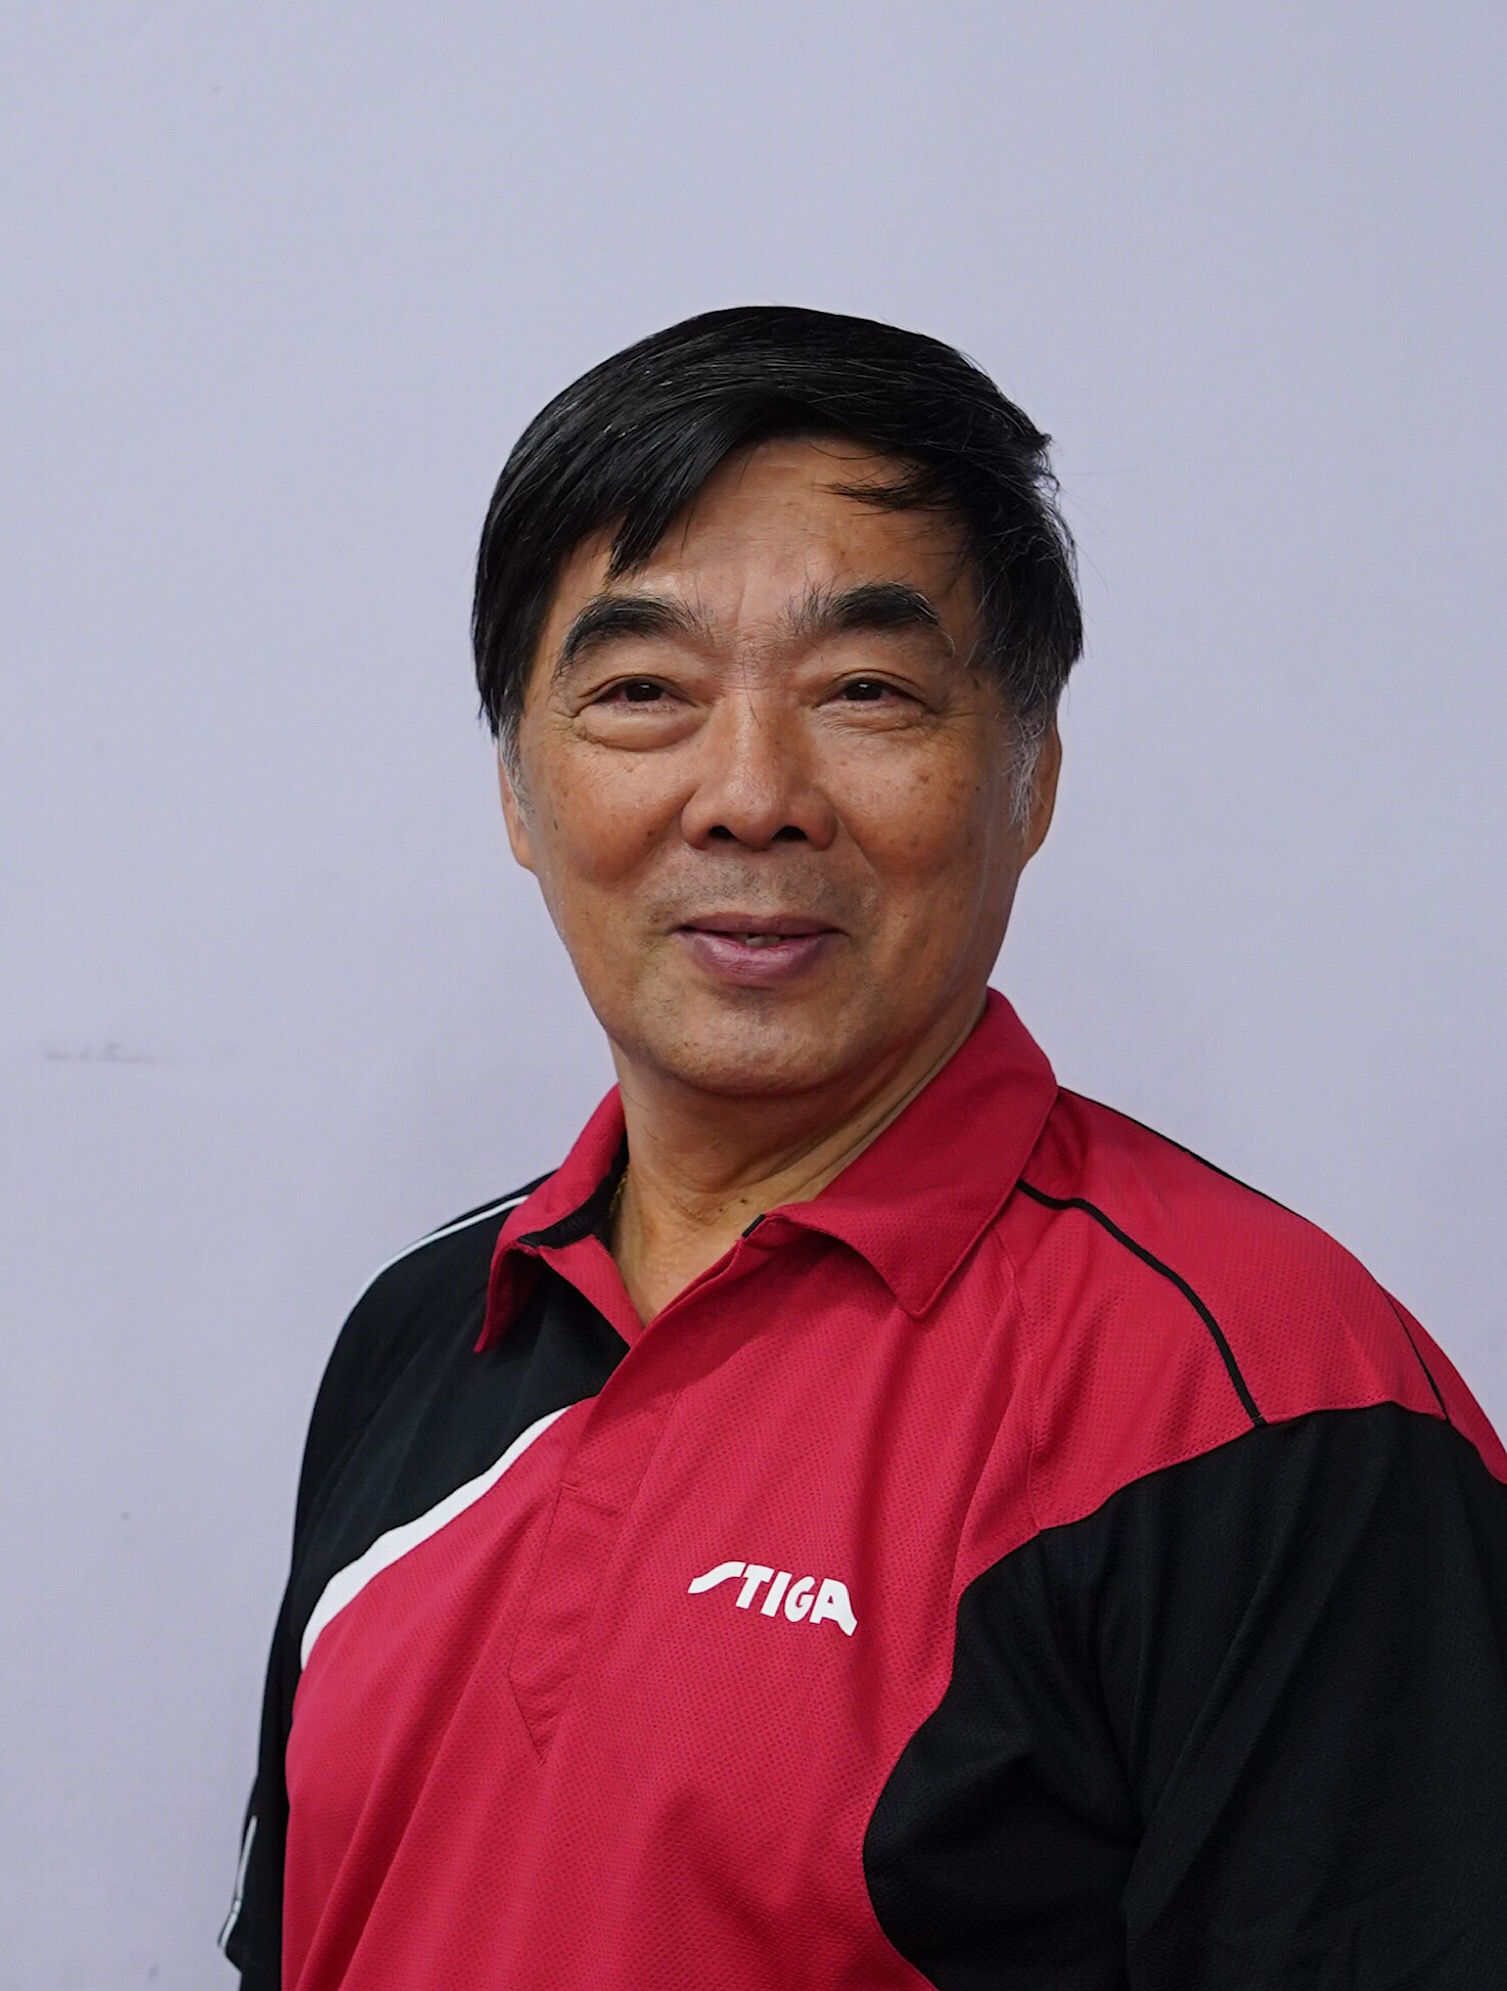 Mr Richard Pang Tow Chai